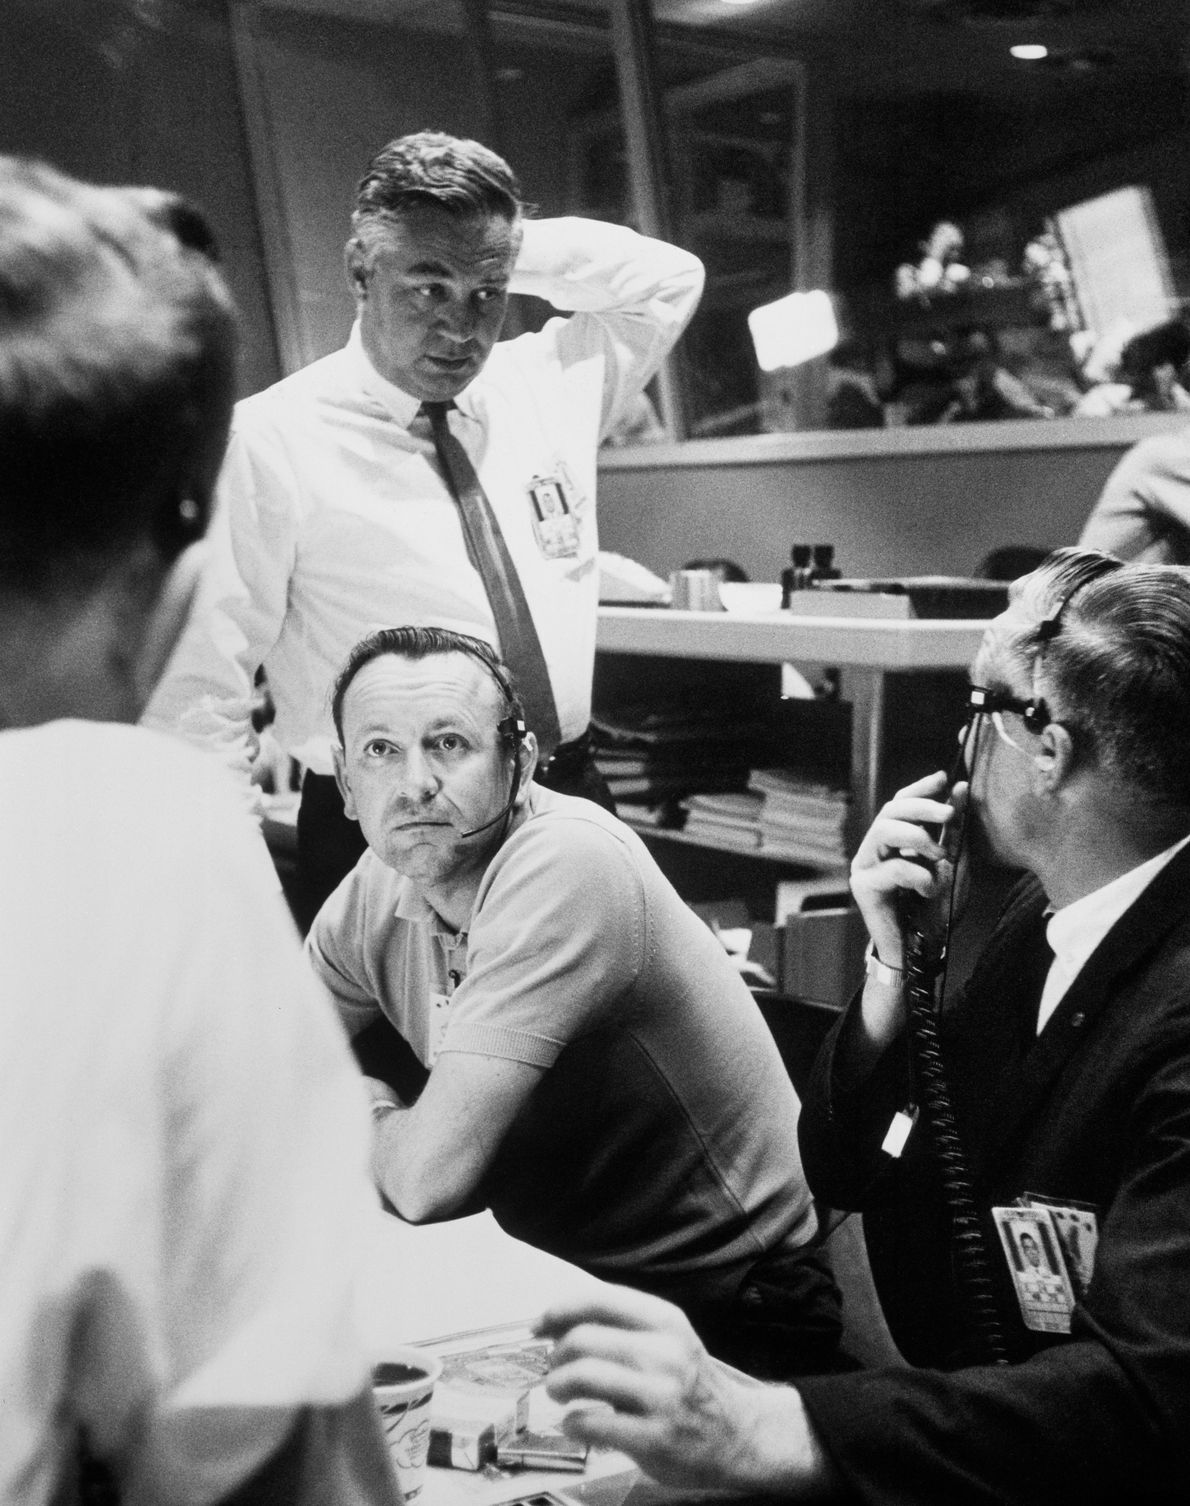 Officials in the Mercury Control Centre make the decision to go for 22 orbits during the ...